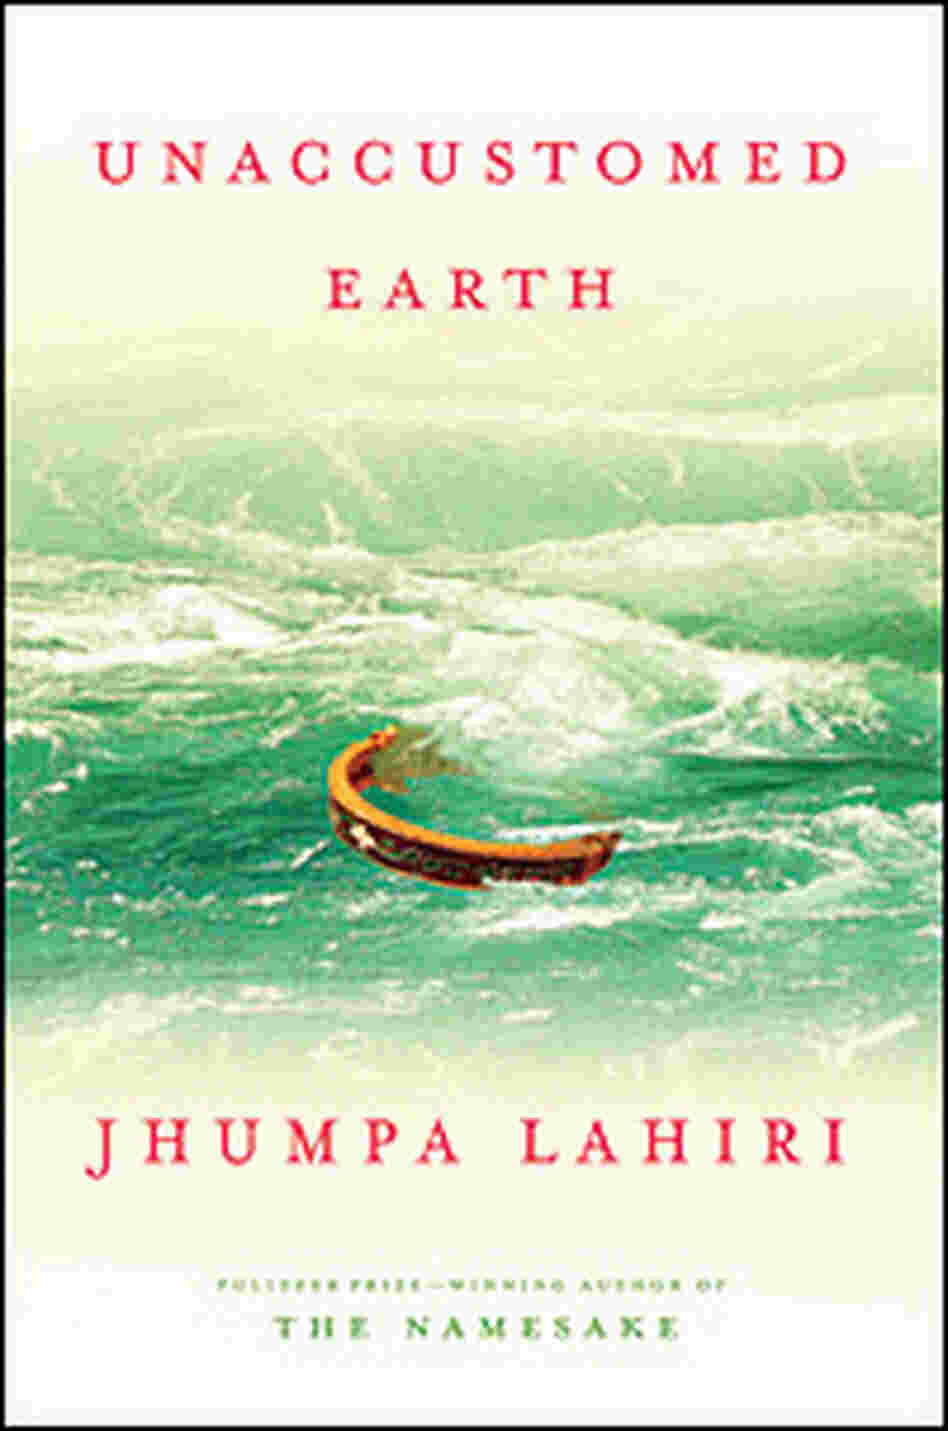 Jhumpa Lahiri's 'Unaccustomed Earth'